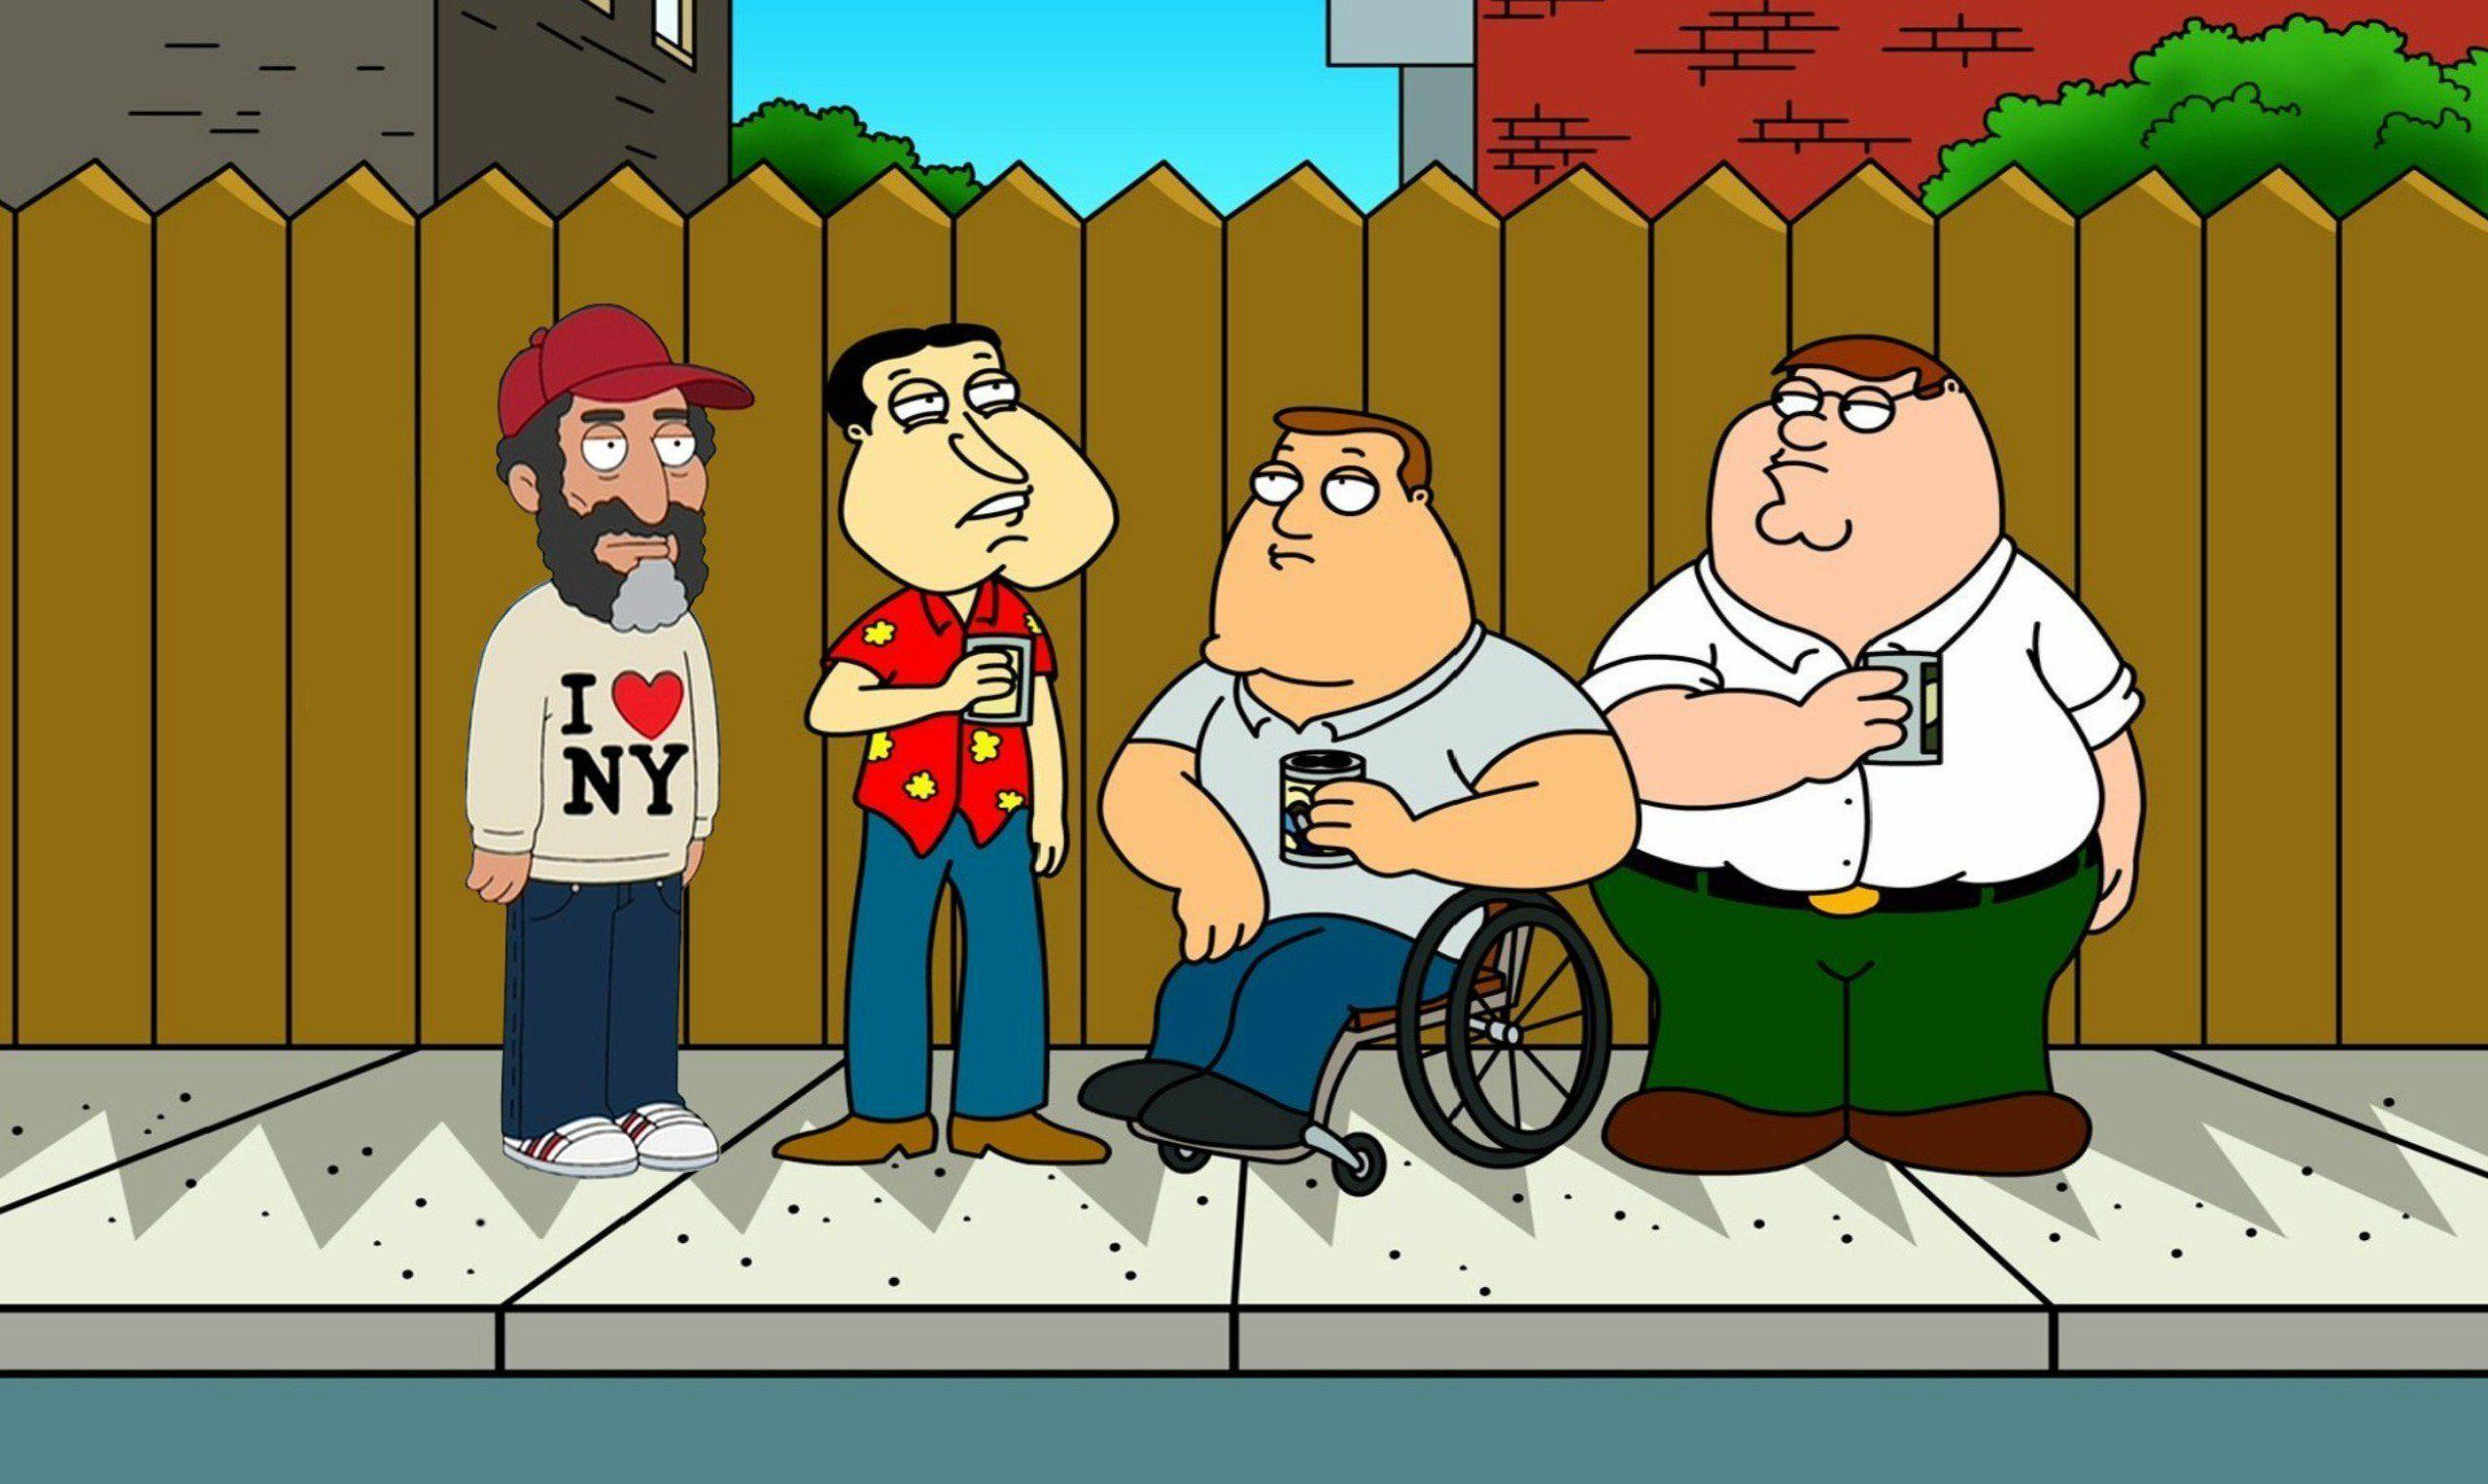 Funny Family Guy Wallpapers - Wallpaper Cave